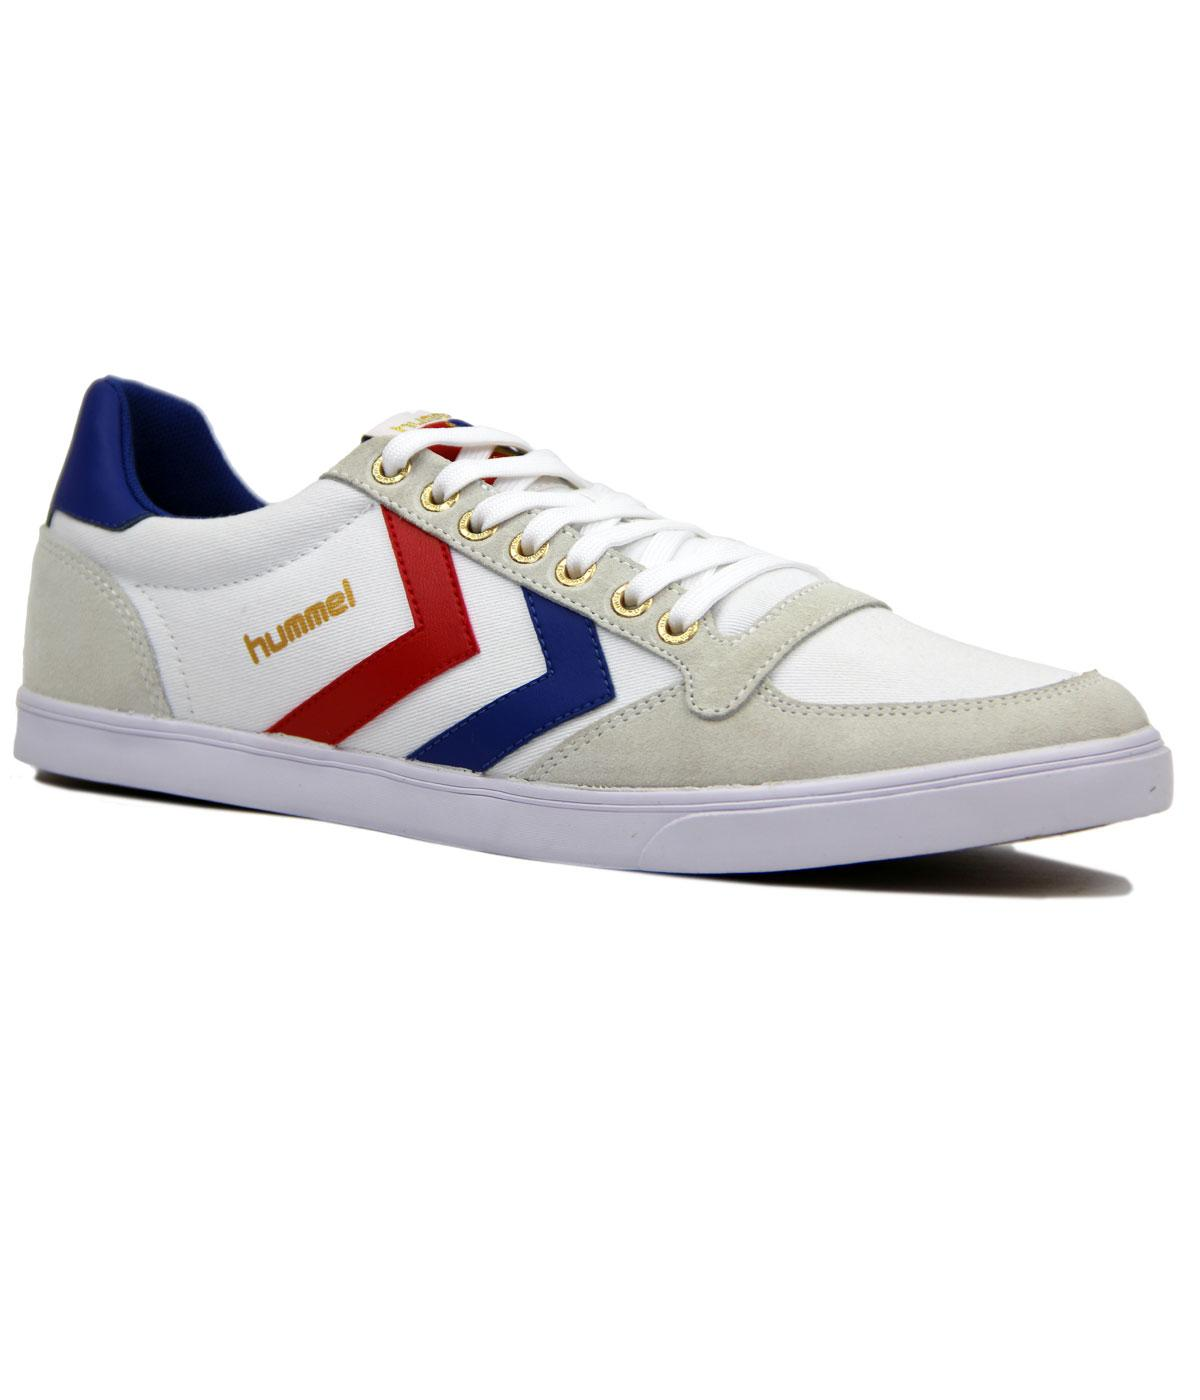 hummel slimmer stadil low trainers retro indie 70s canvas trainers. Black Bedroom Furniture Sets. Home Design Ideas